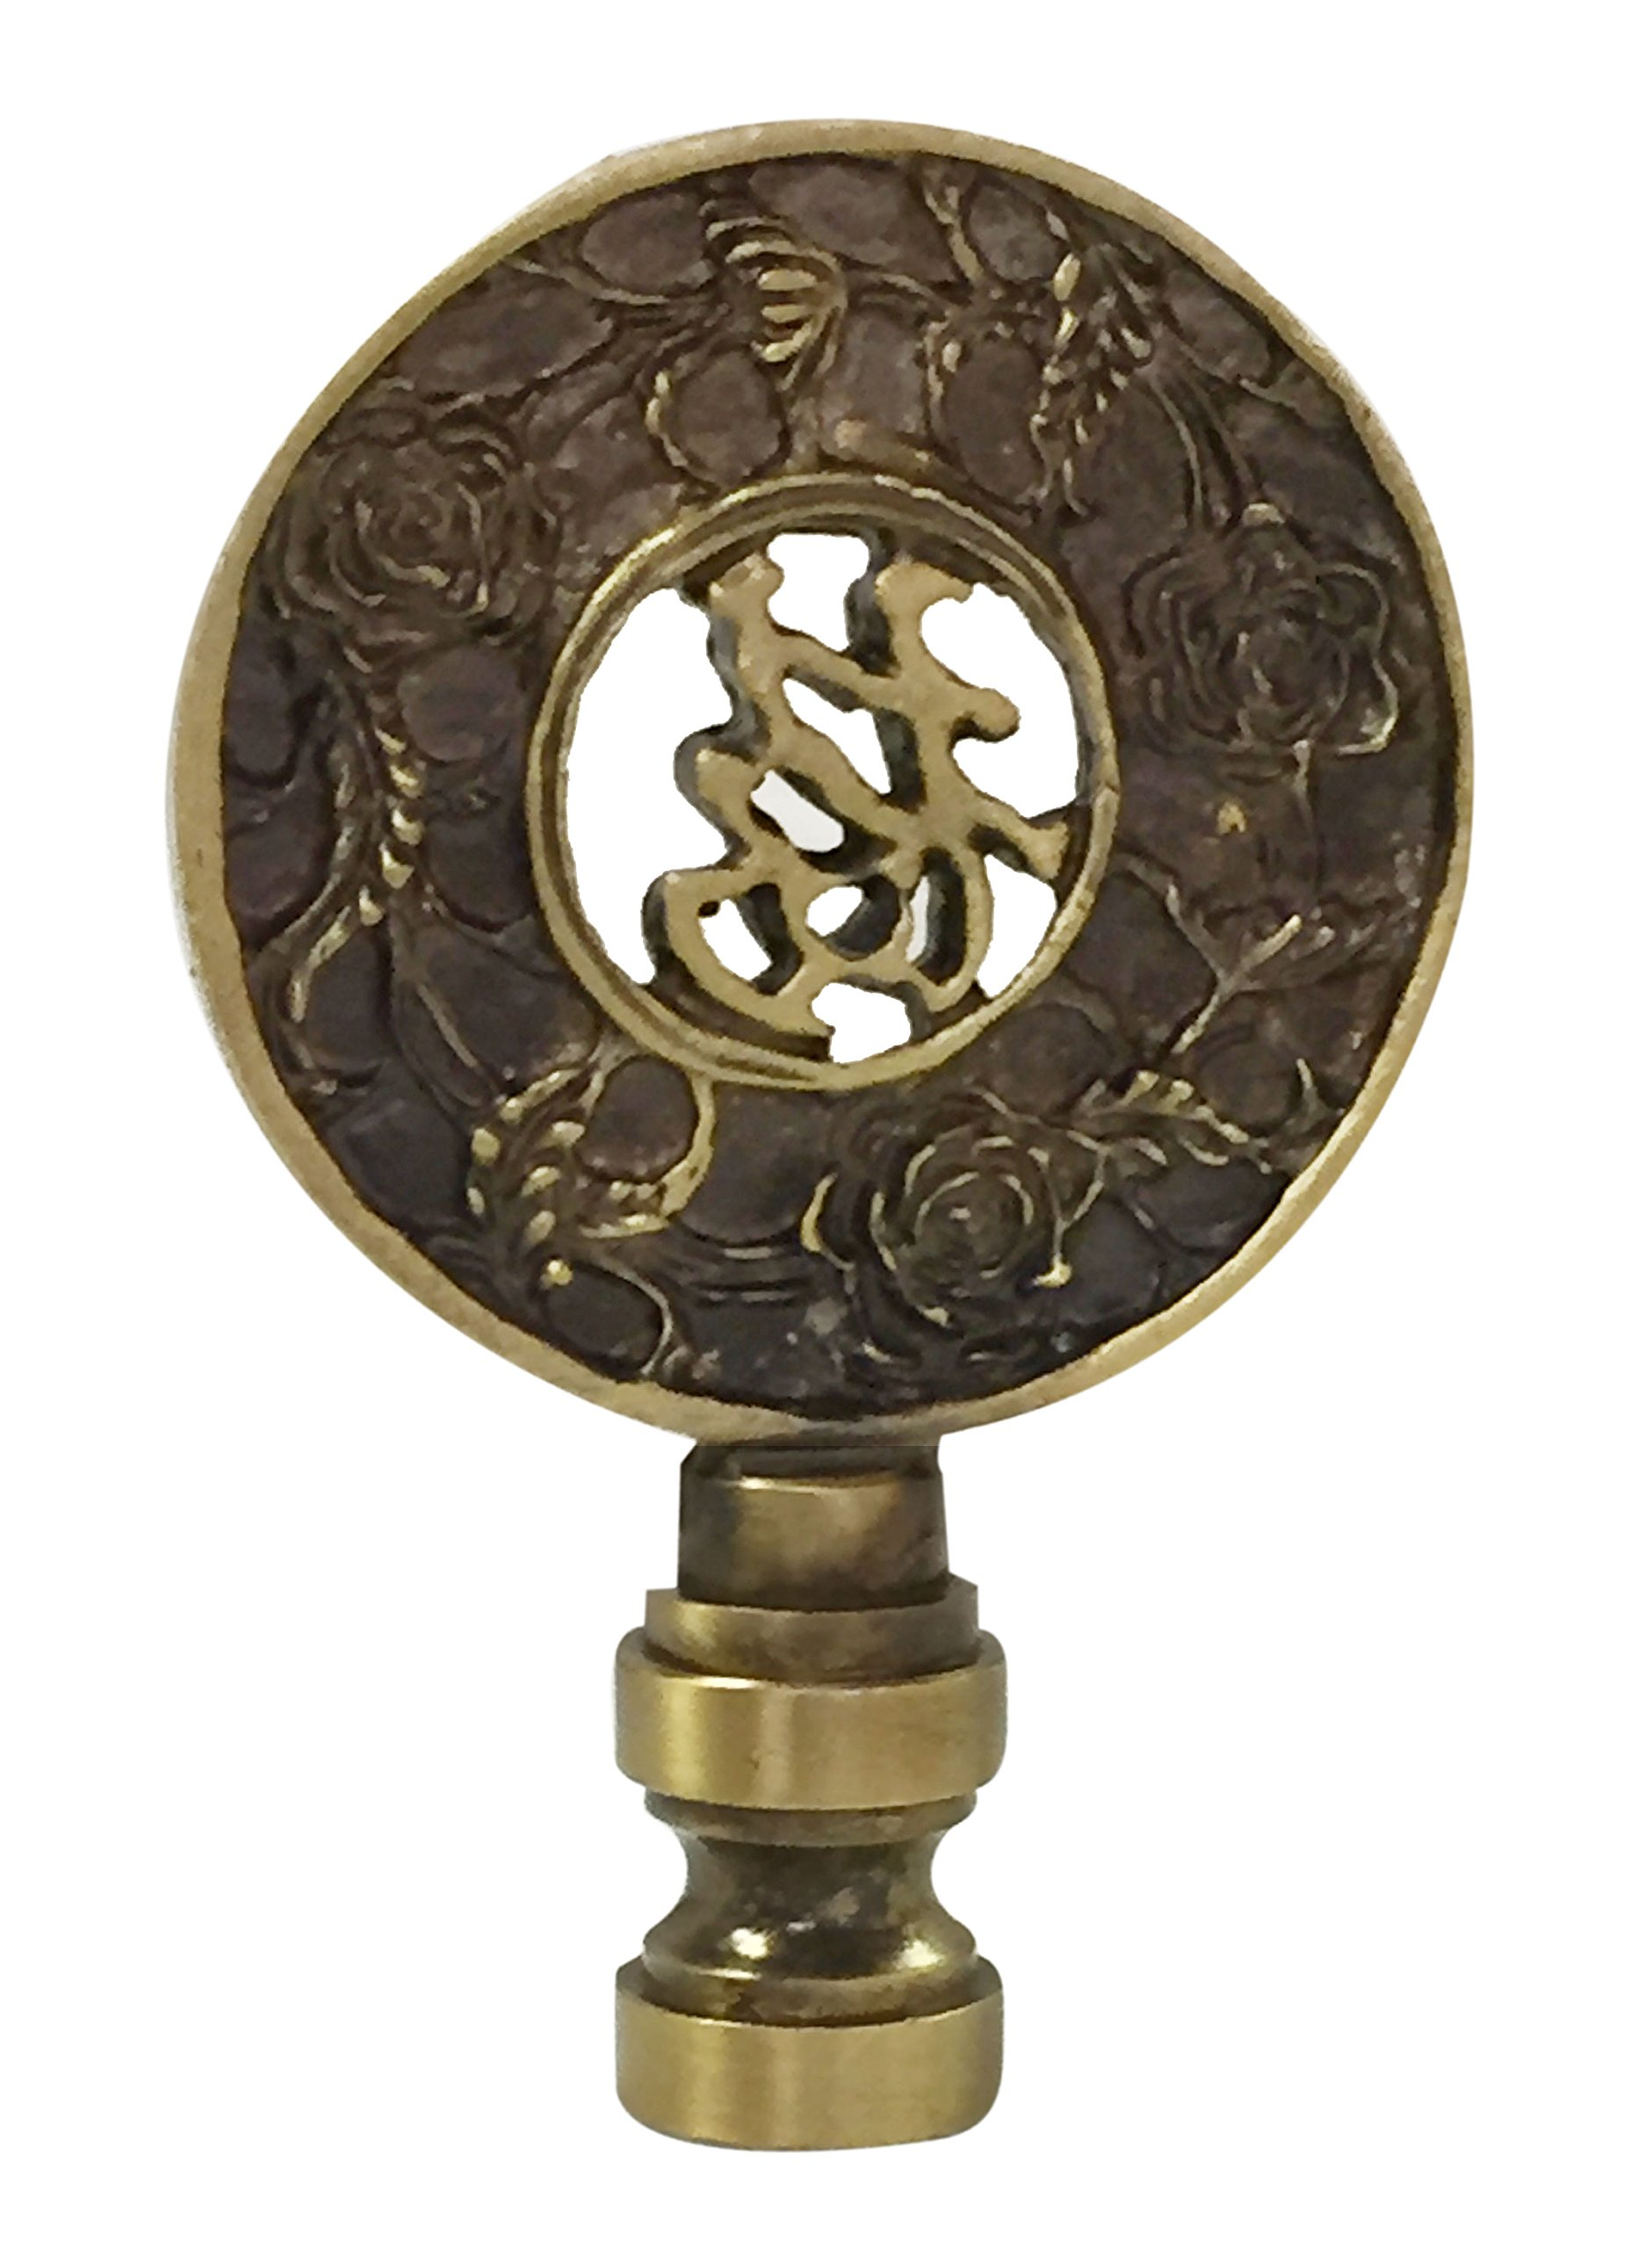 Royal Designs Good Fortune Oriental Motif Lamp Finial for Lamp Shade- Antique Brass